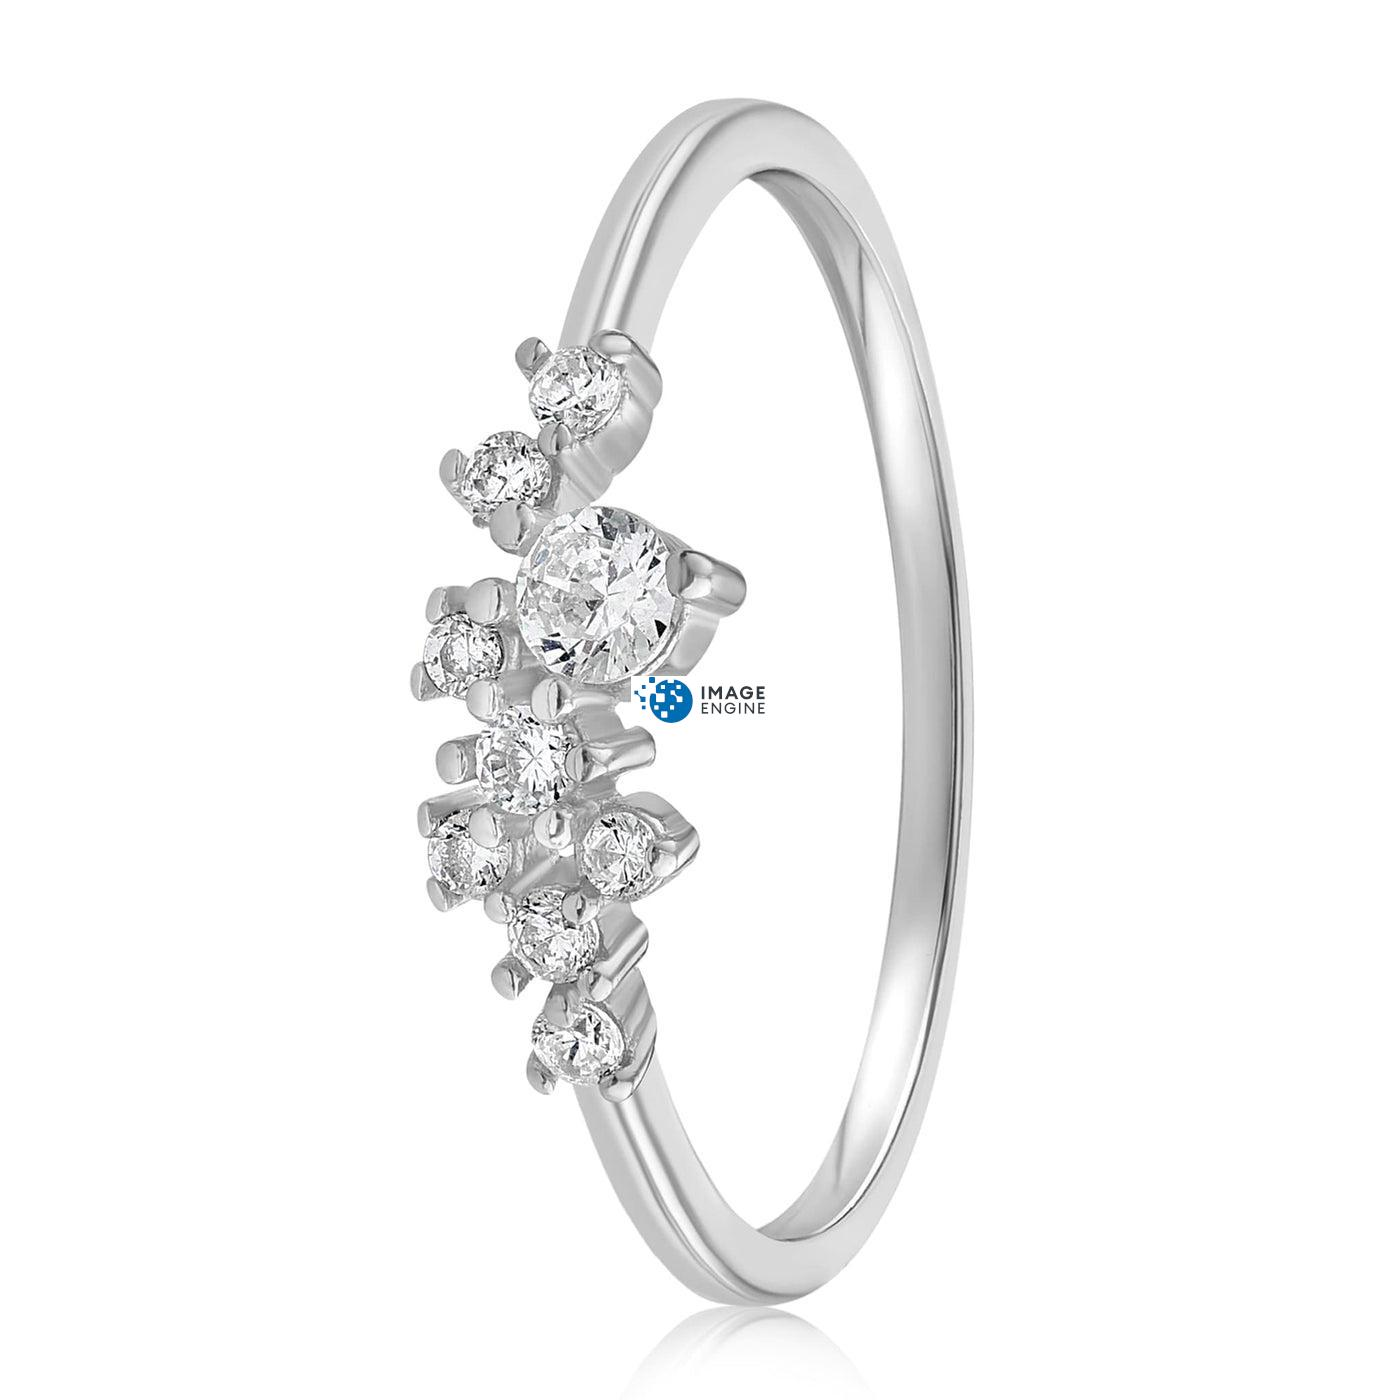 Sasha Sparkle Ring - Side View - 925 Sterling Silver